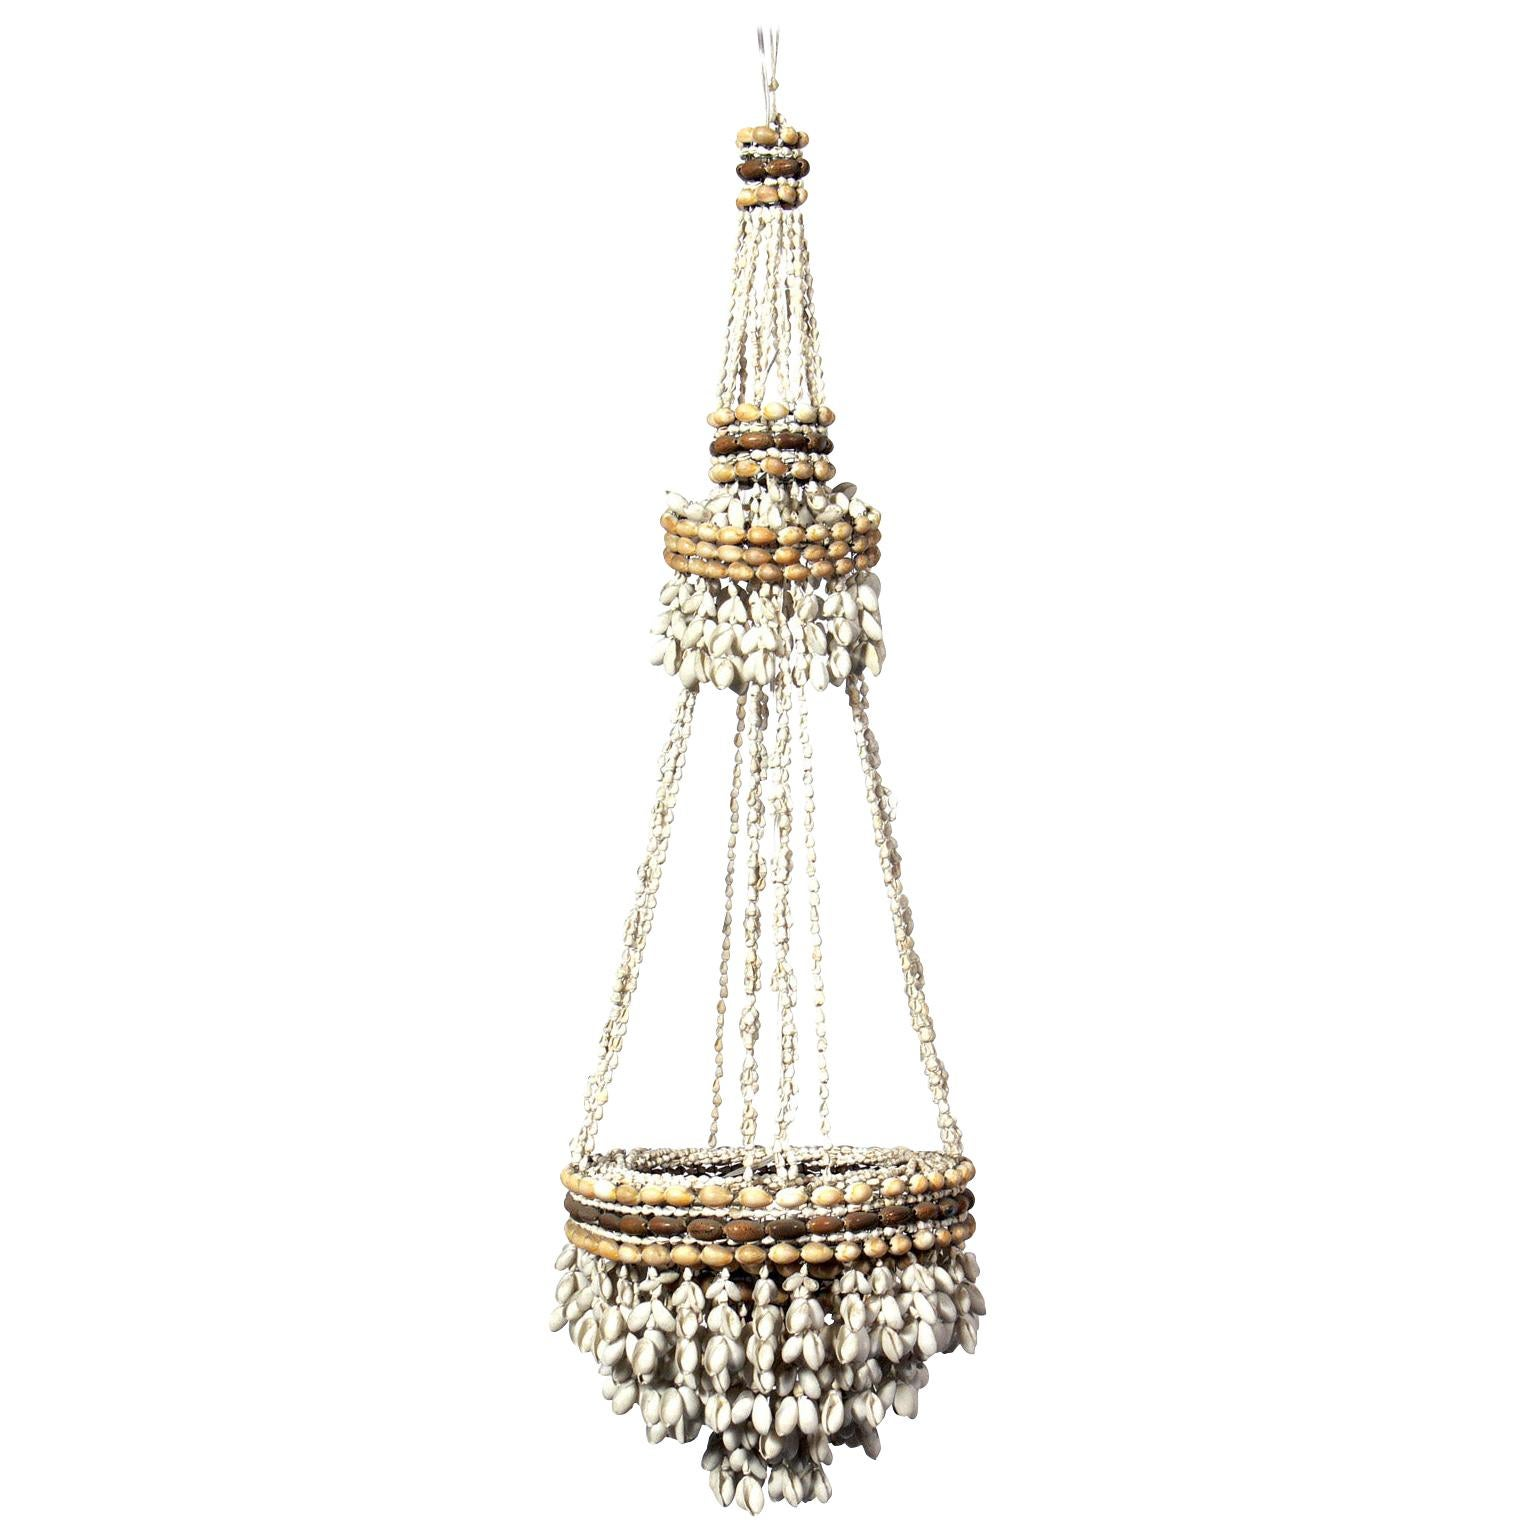 French Sea Shells Chandelier or Pendant